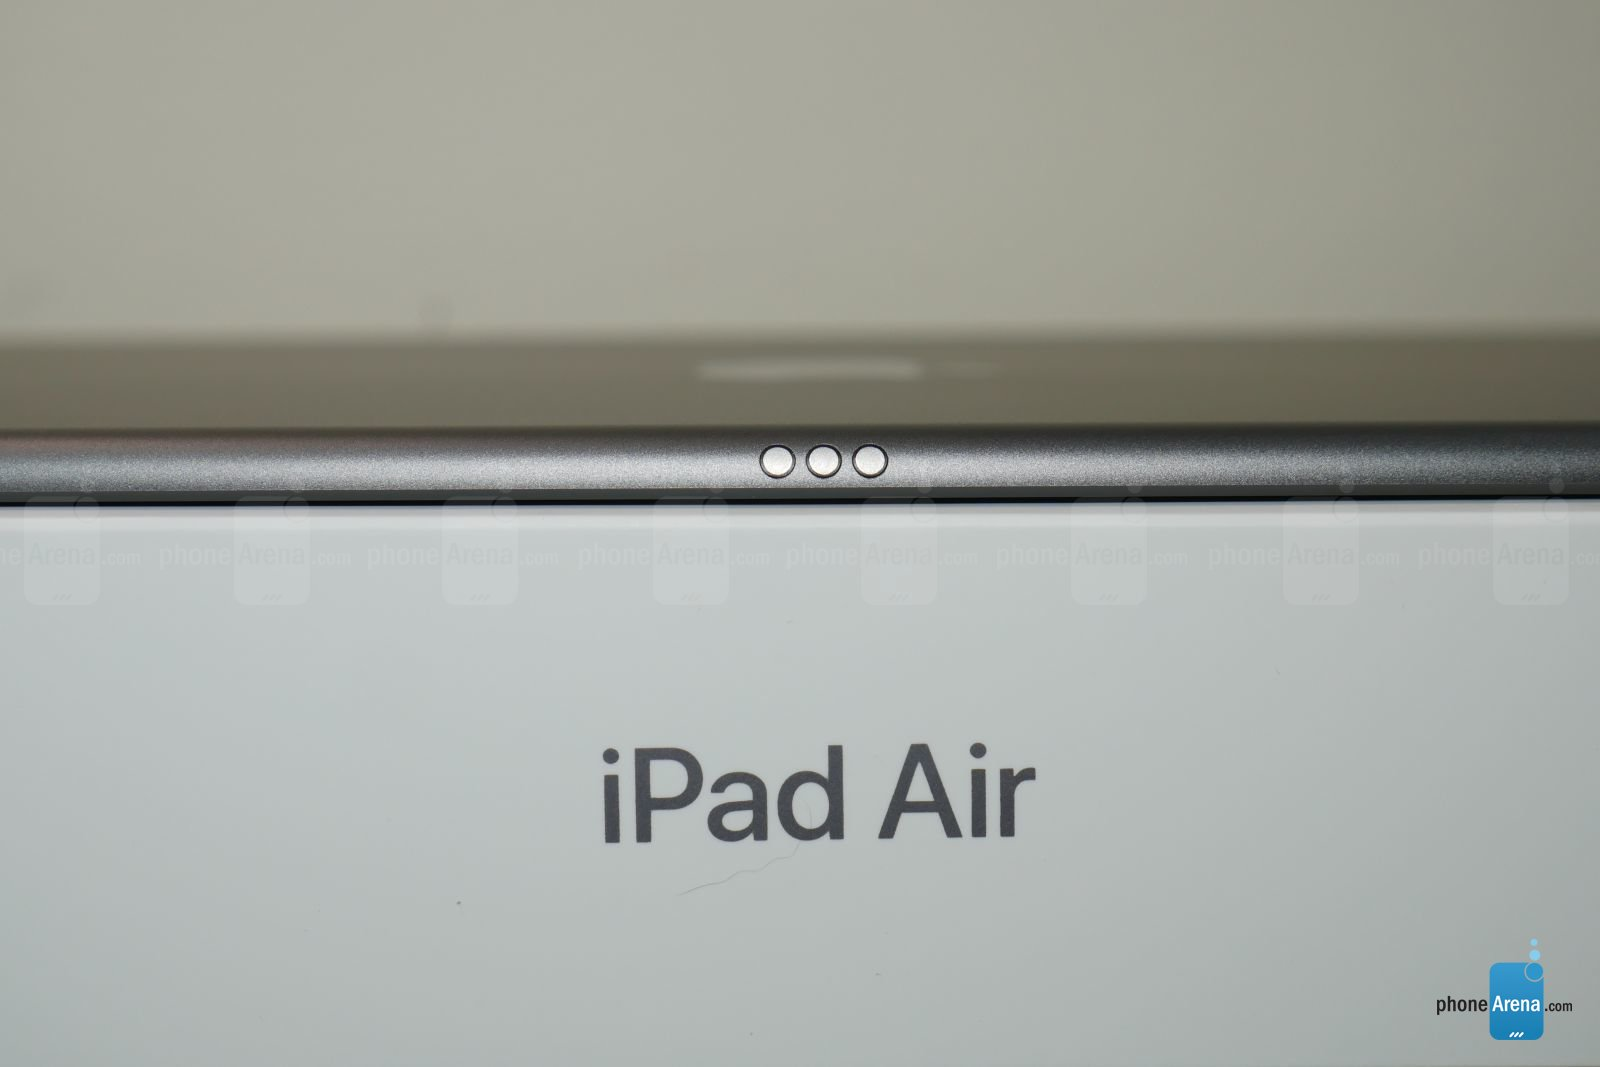 Apple iPad Air 2019 unboxing 3